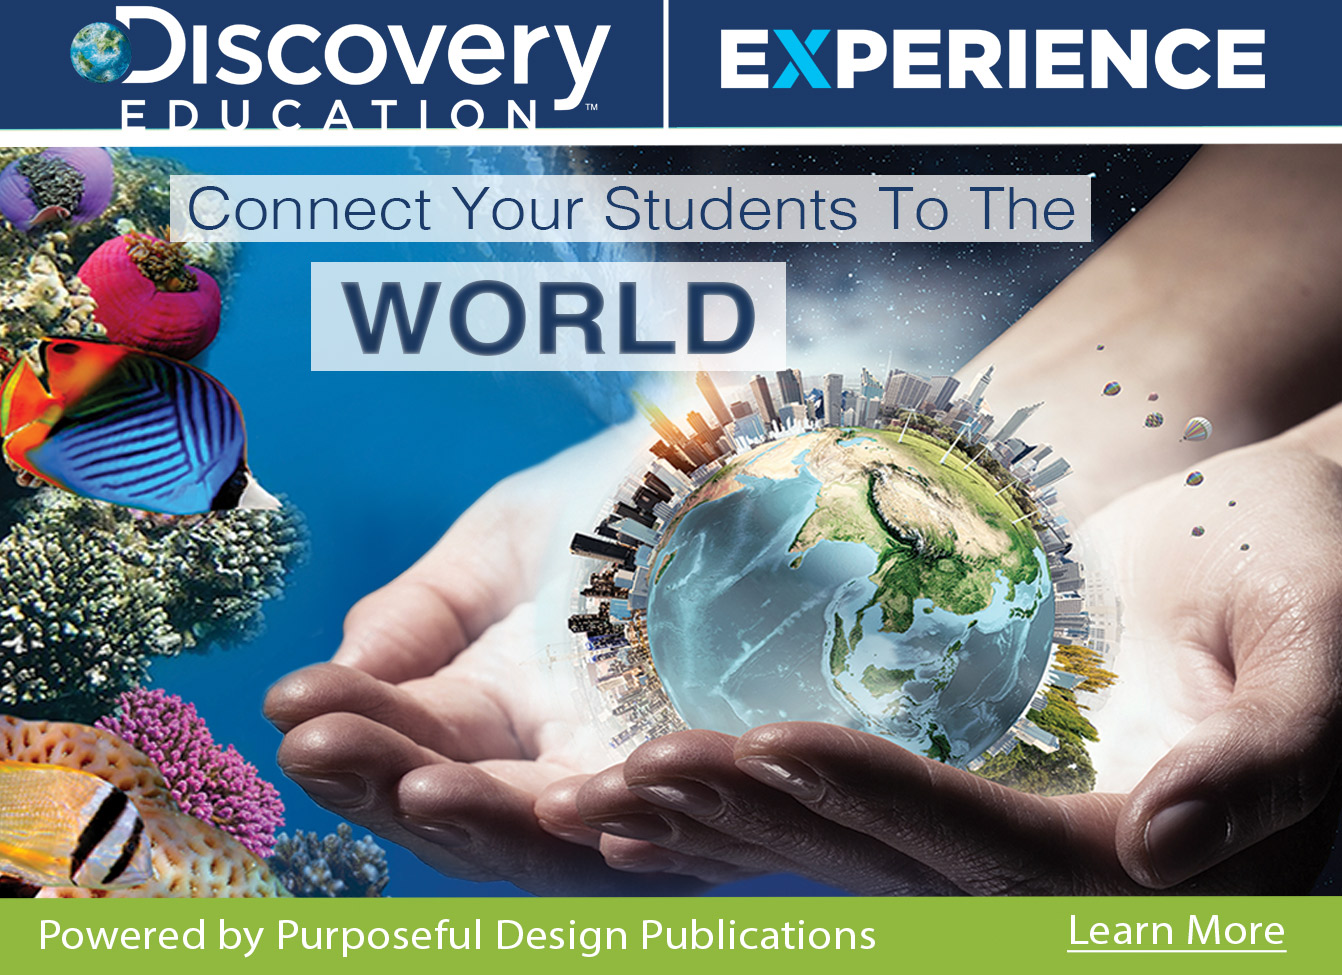 Discovery Education Streaming and Discovery Education Experience